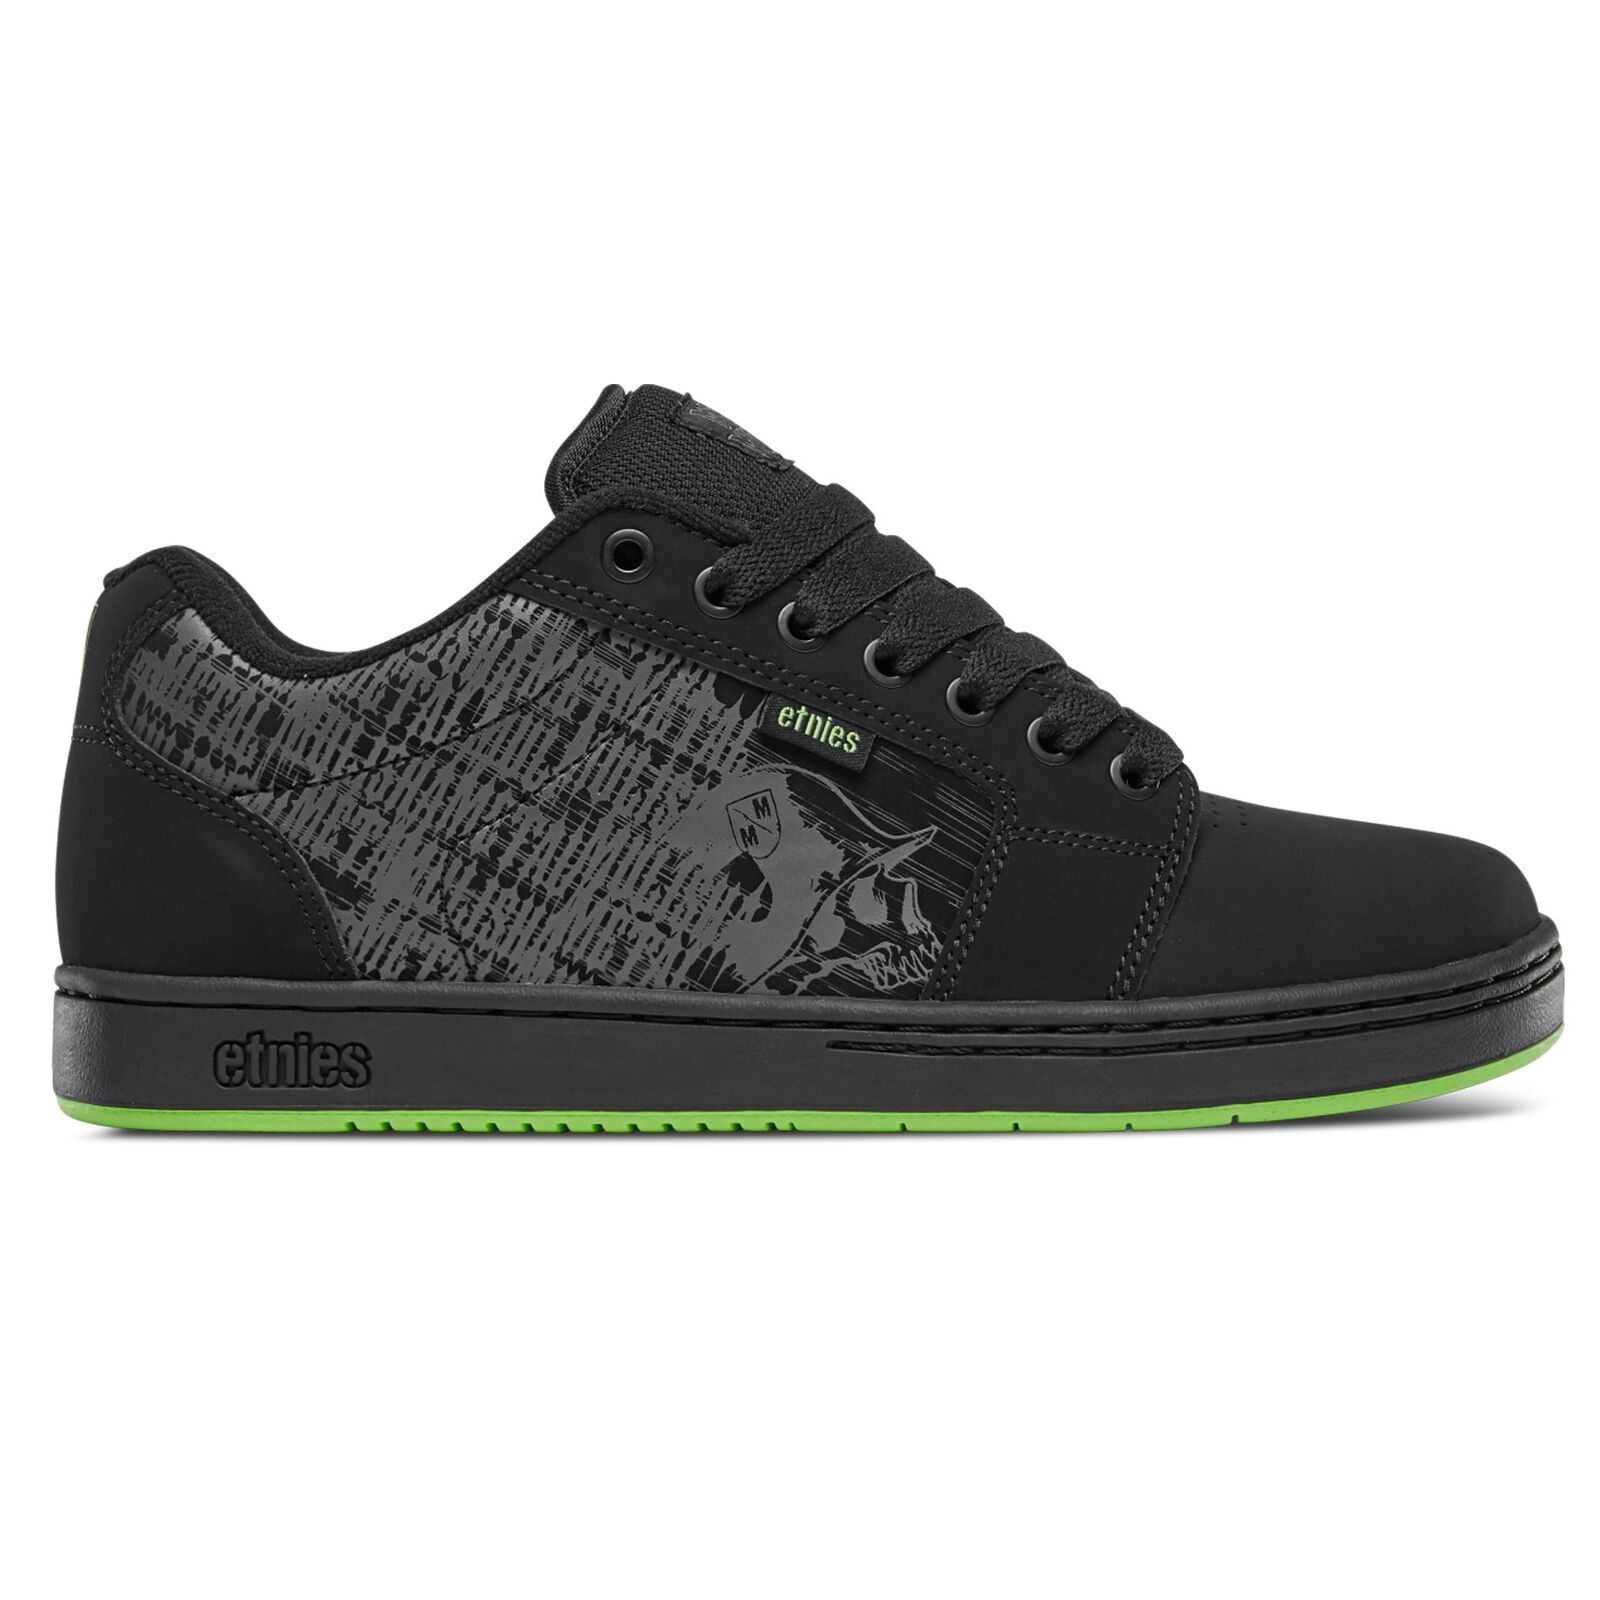 Etnies-Metal Mulisha Barge XL 4107000540 895 nero Lime | Stili diversi